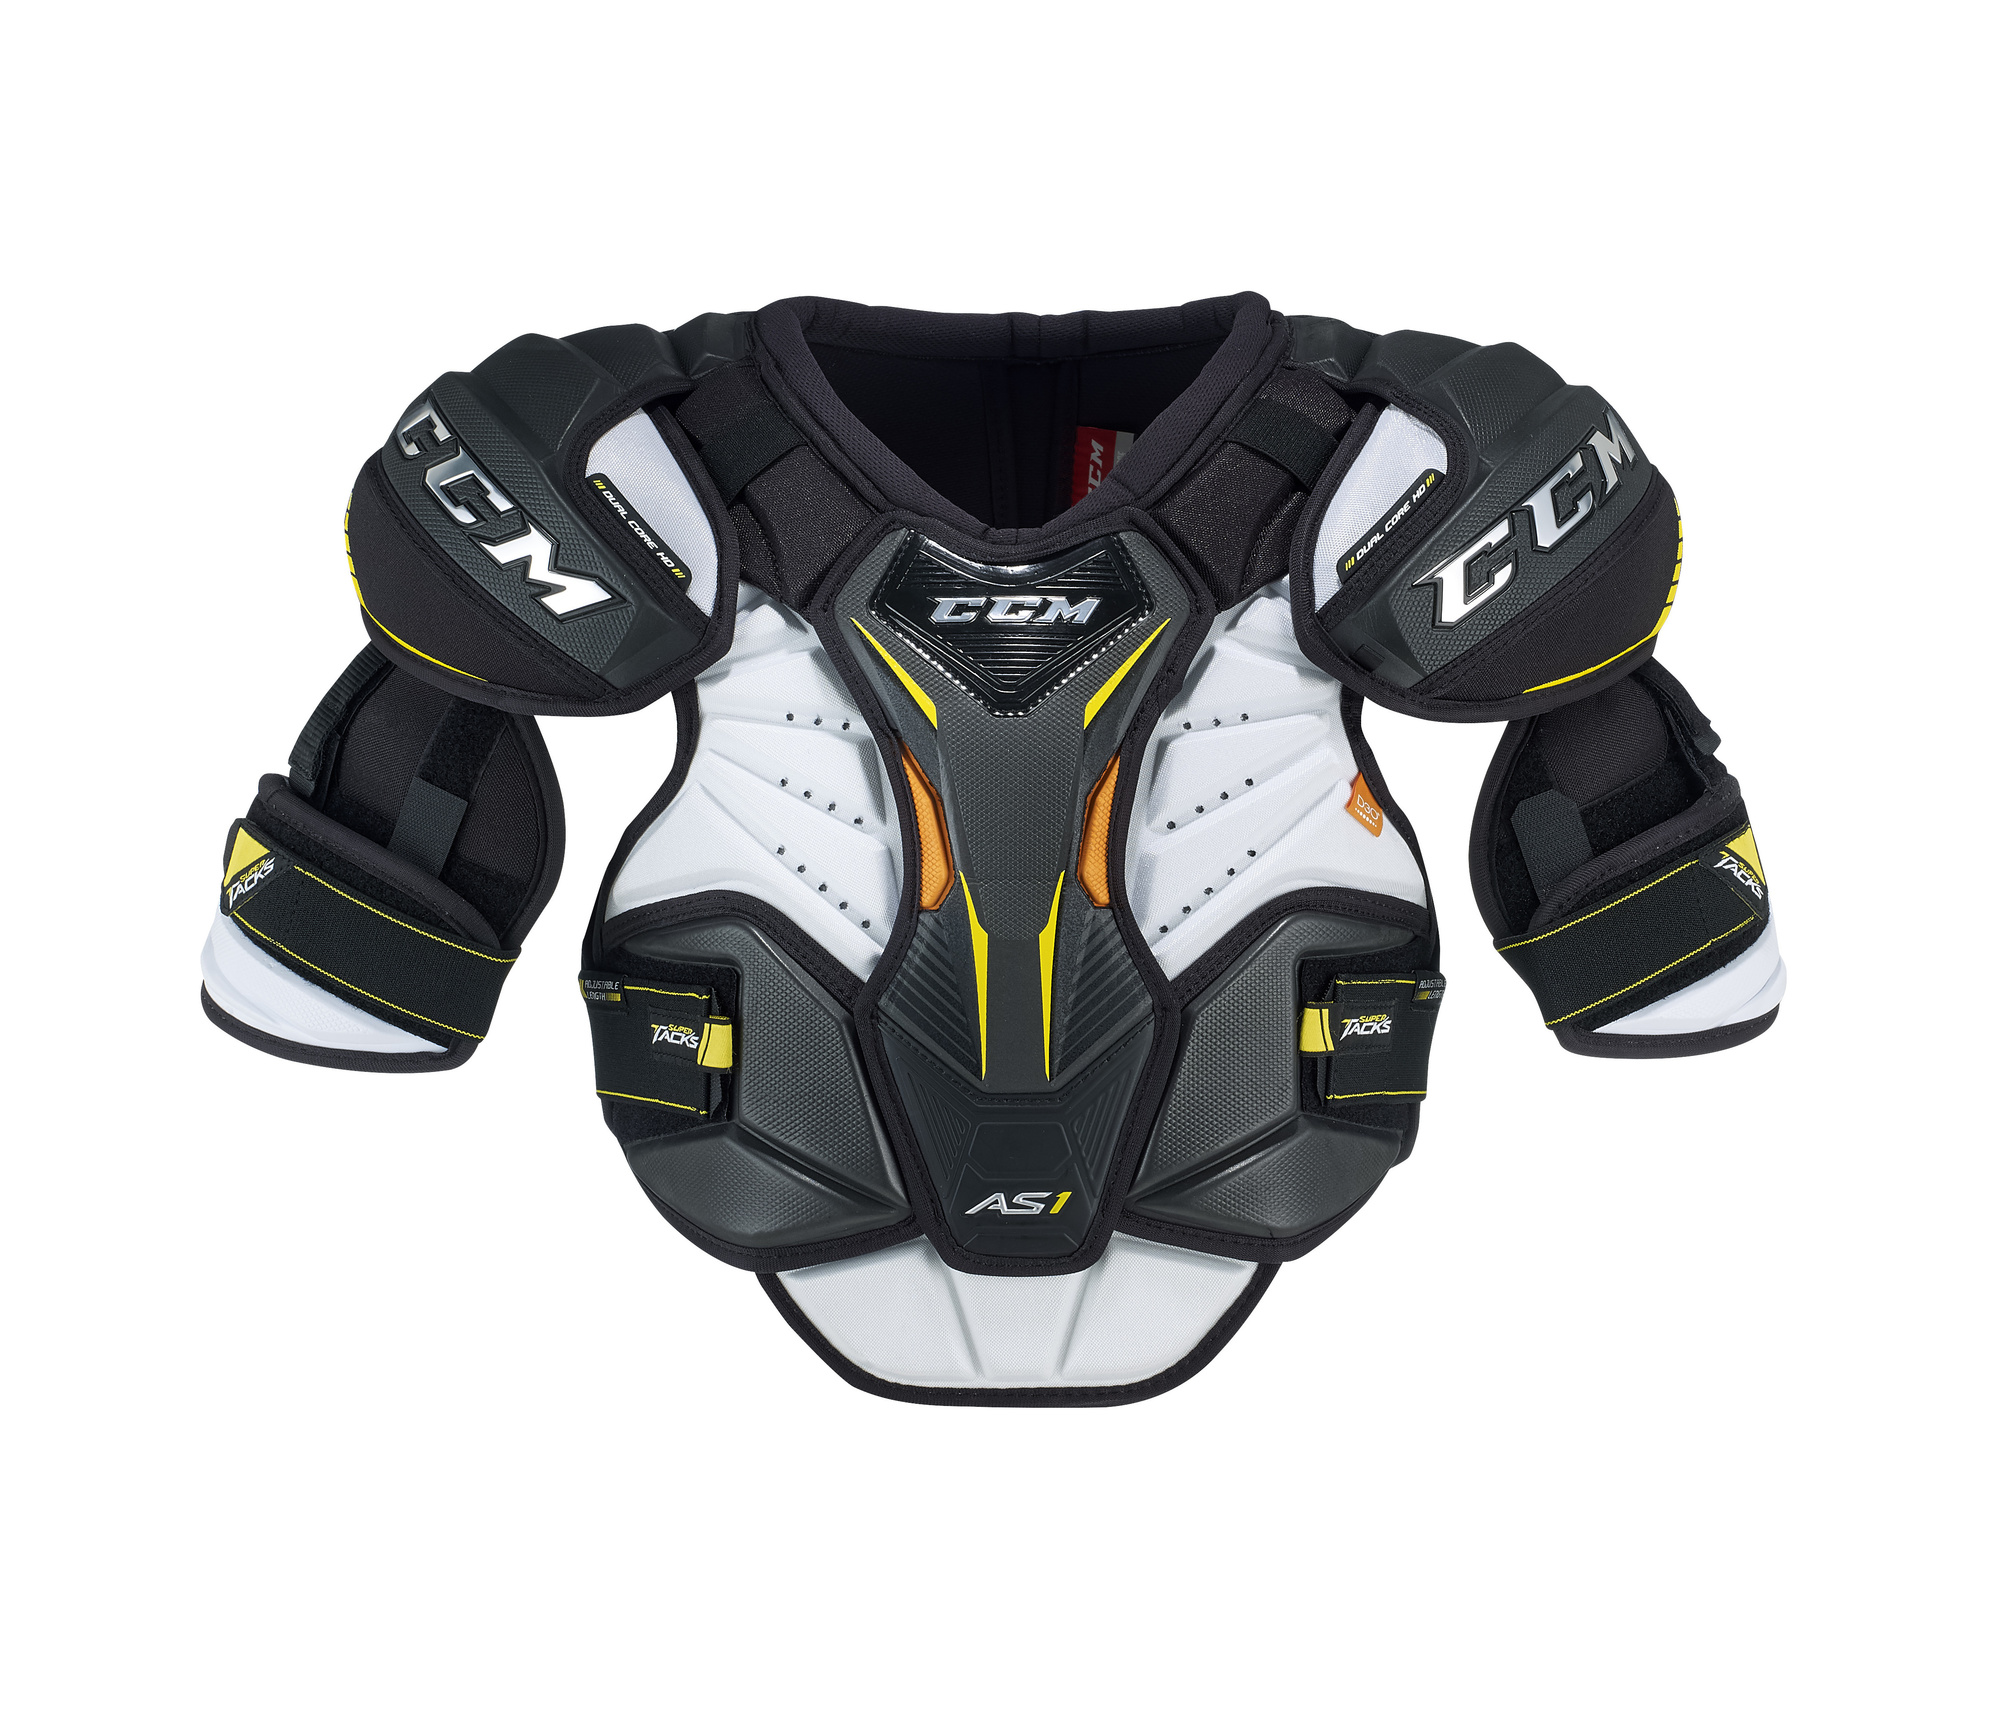 Ramena CCM Super Tacks AS1 SR, Senior, M